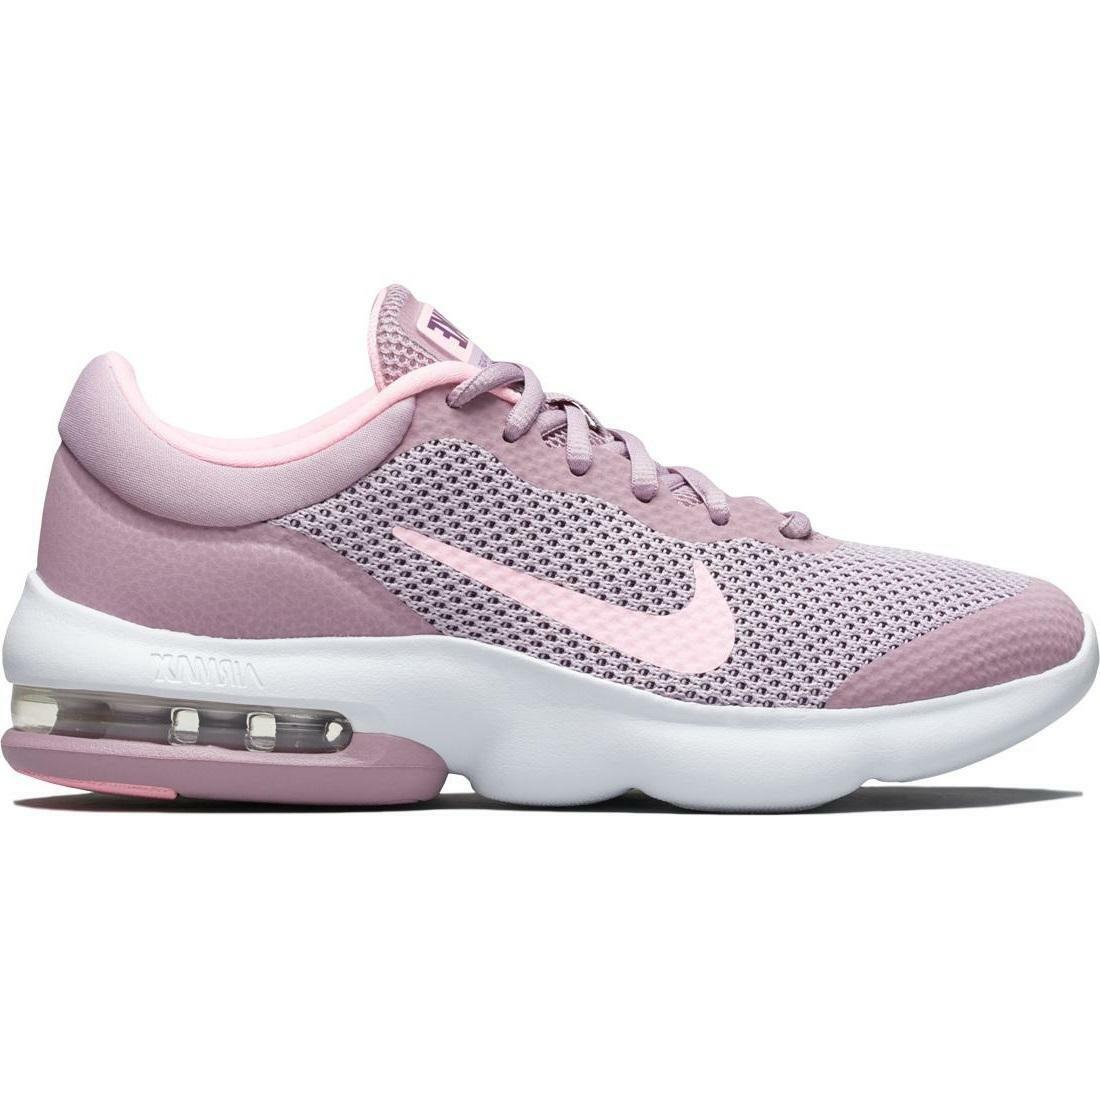 Womens NIKE AIR MAX ADVANTAGE ADVANTAGE ADVANTAGE Elemental pink Trainers 908991 600 b06857